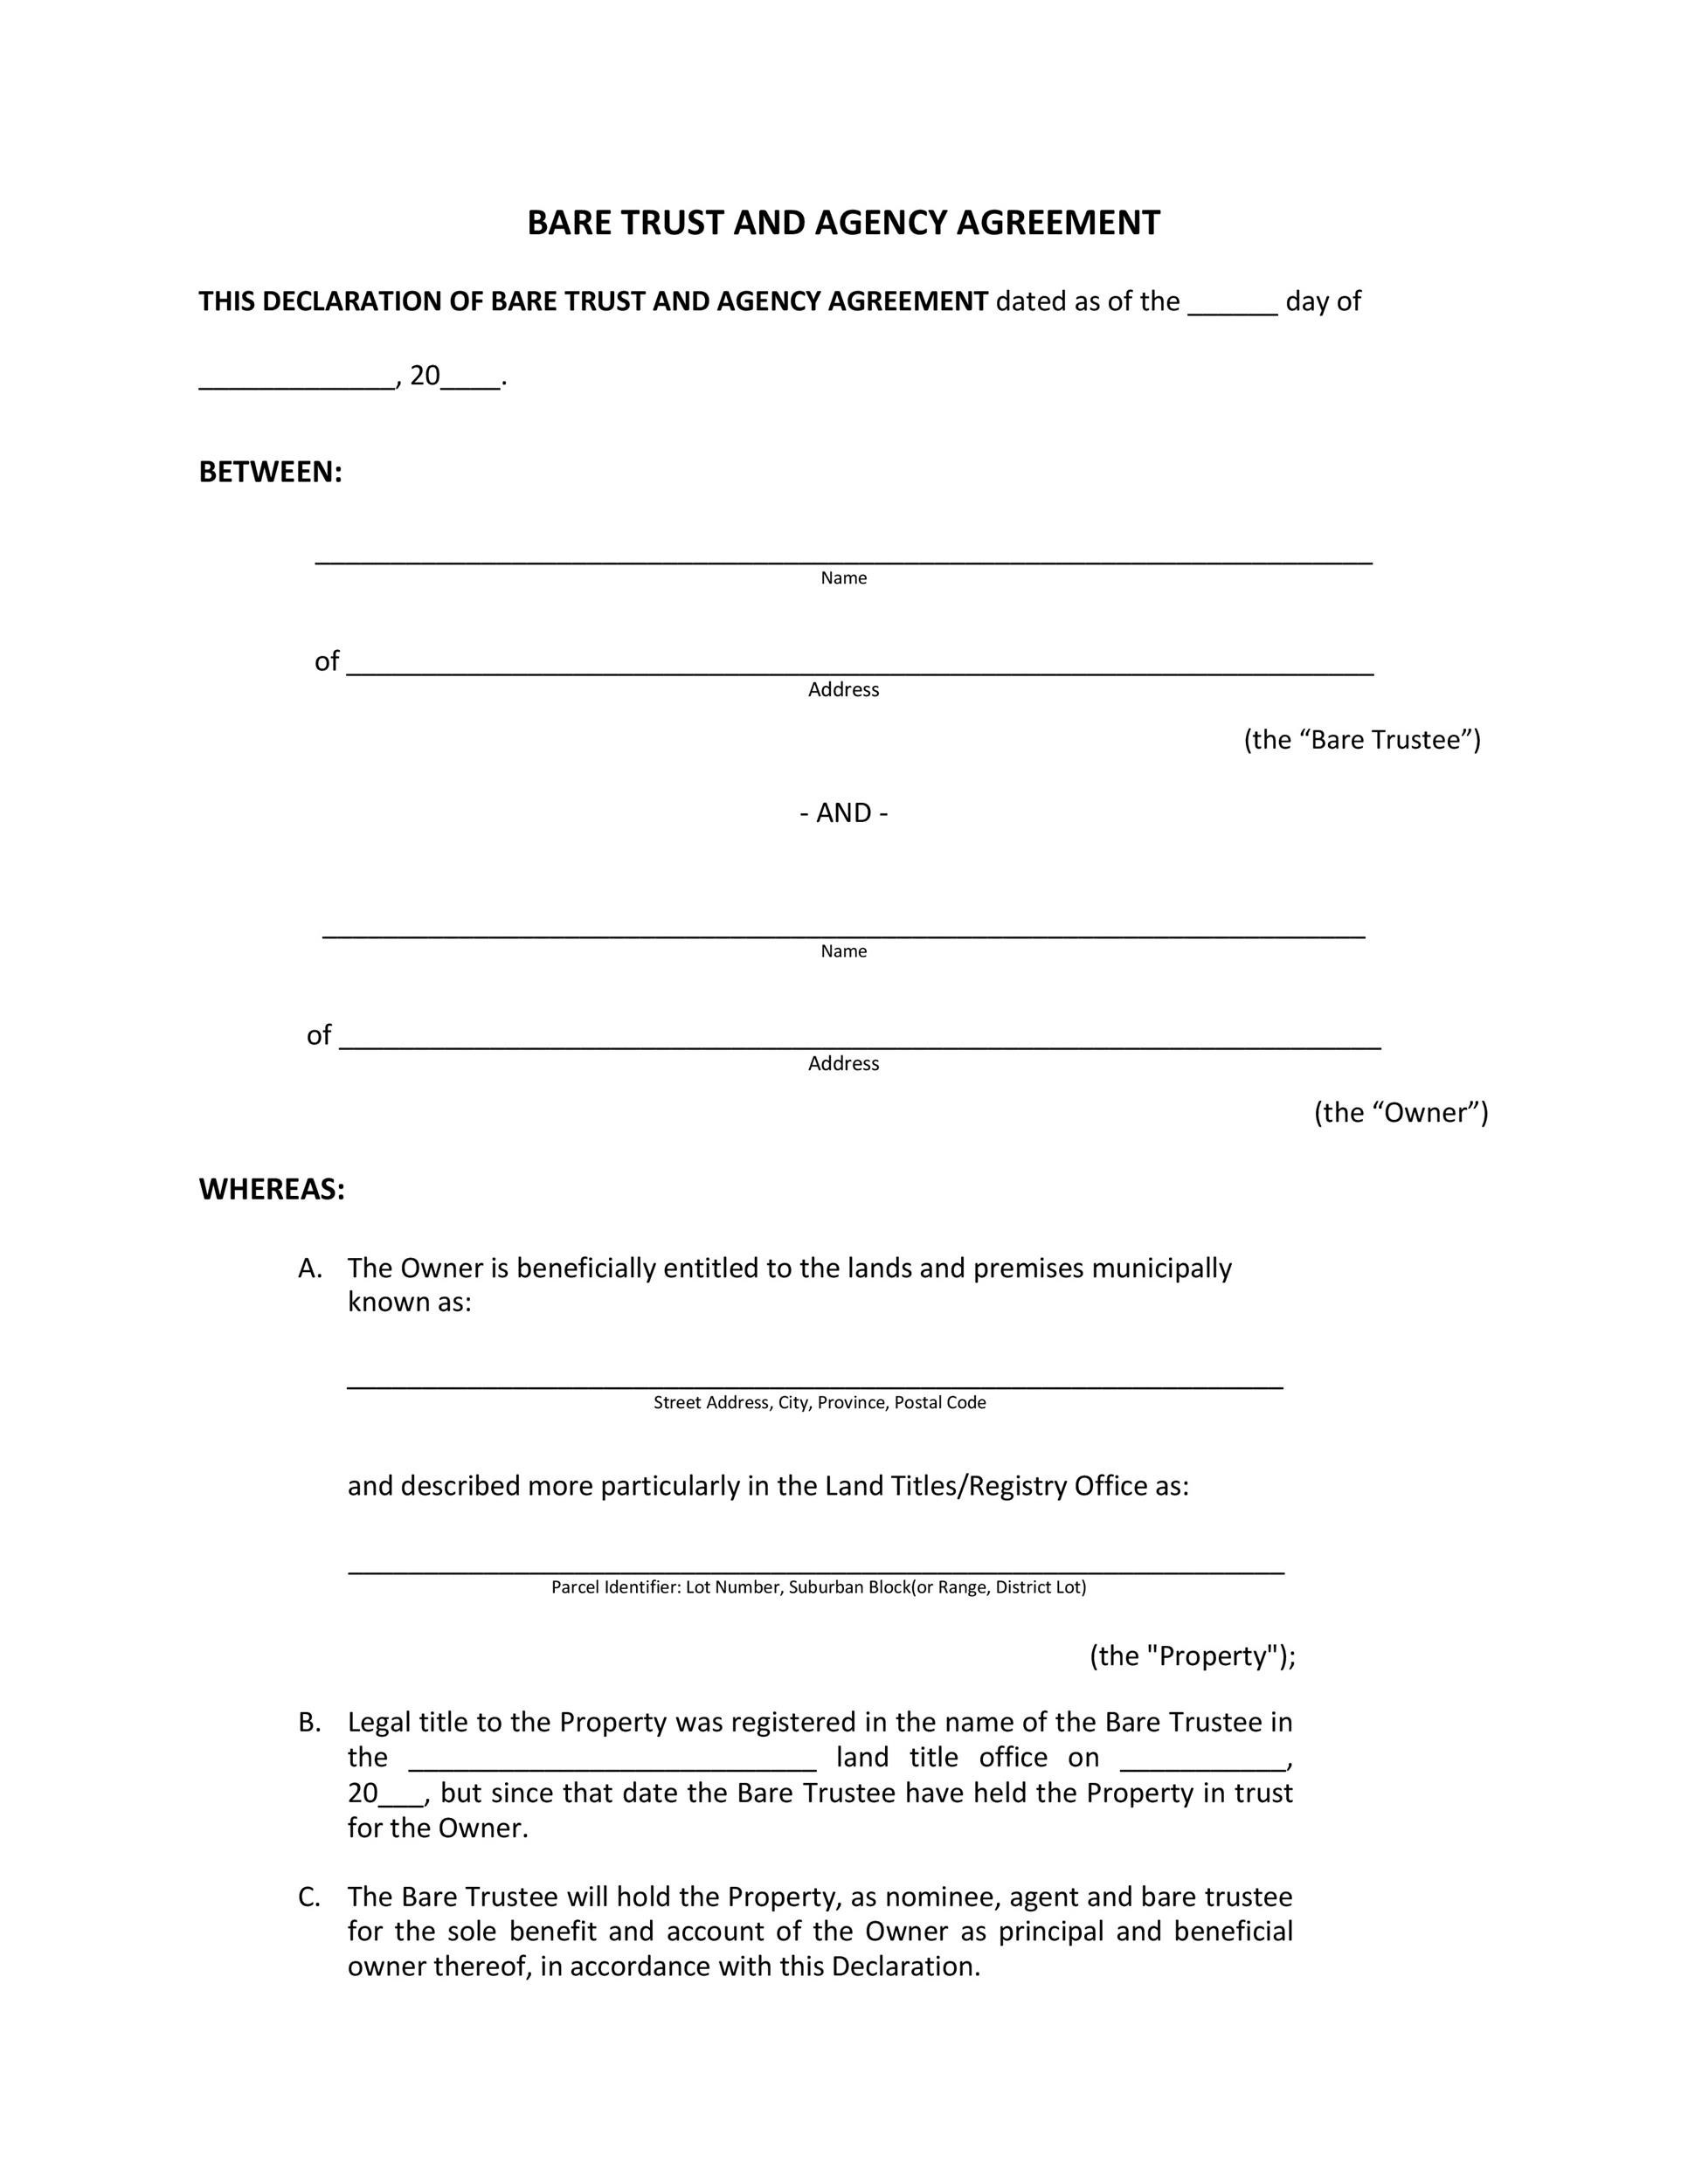 Free agency agreement 26